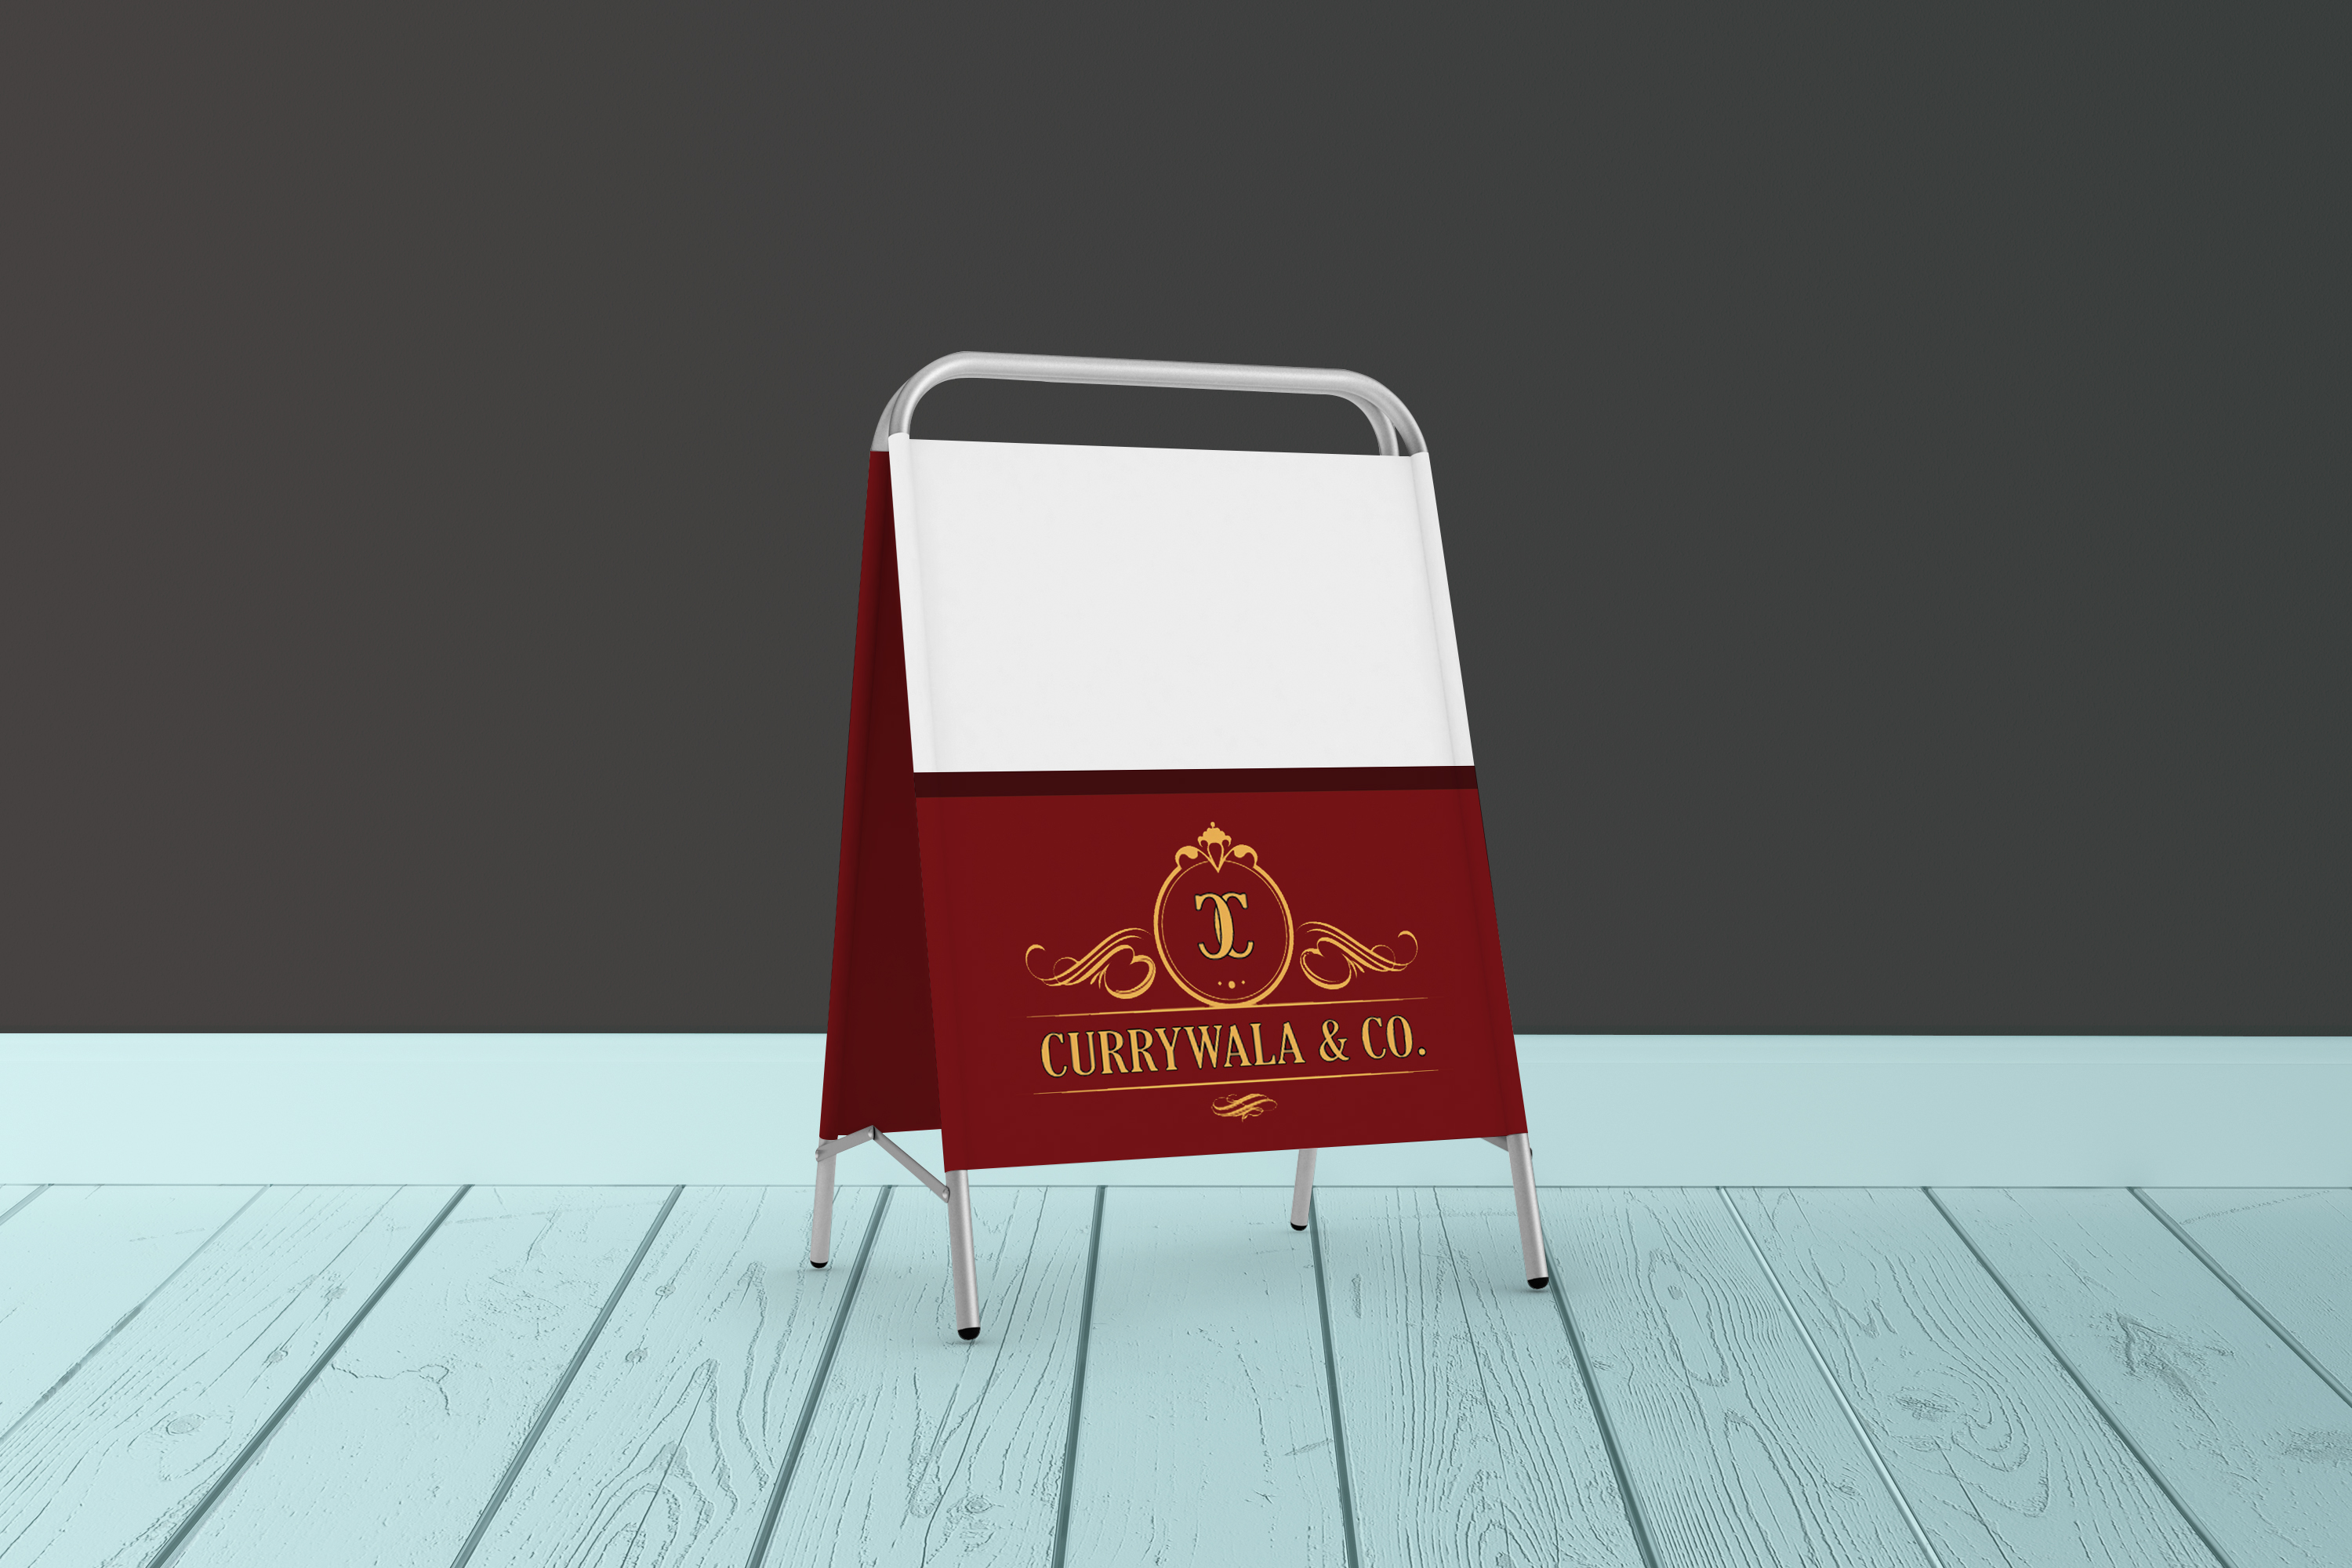 Free Advertising Stand Mockup PSD